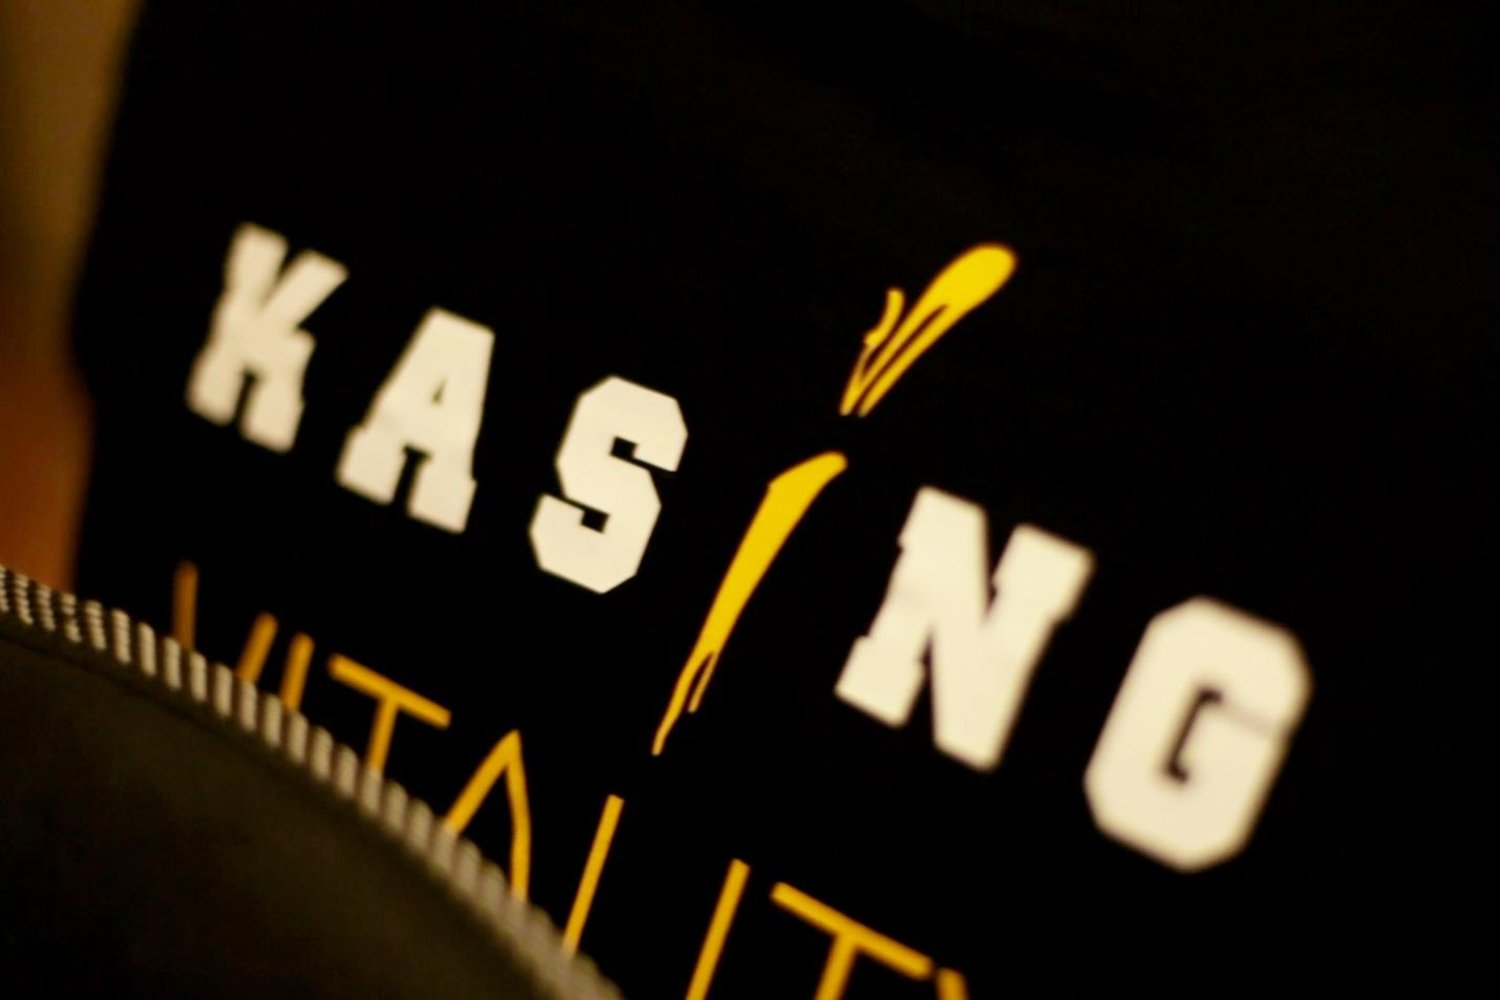 kasing-signs-with-team-vitality